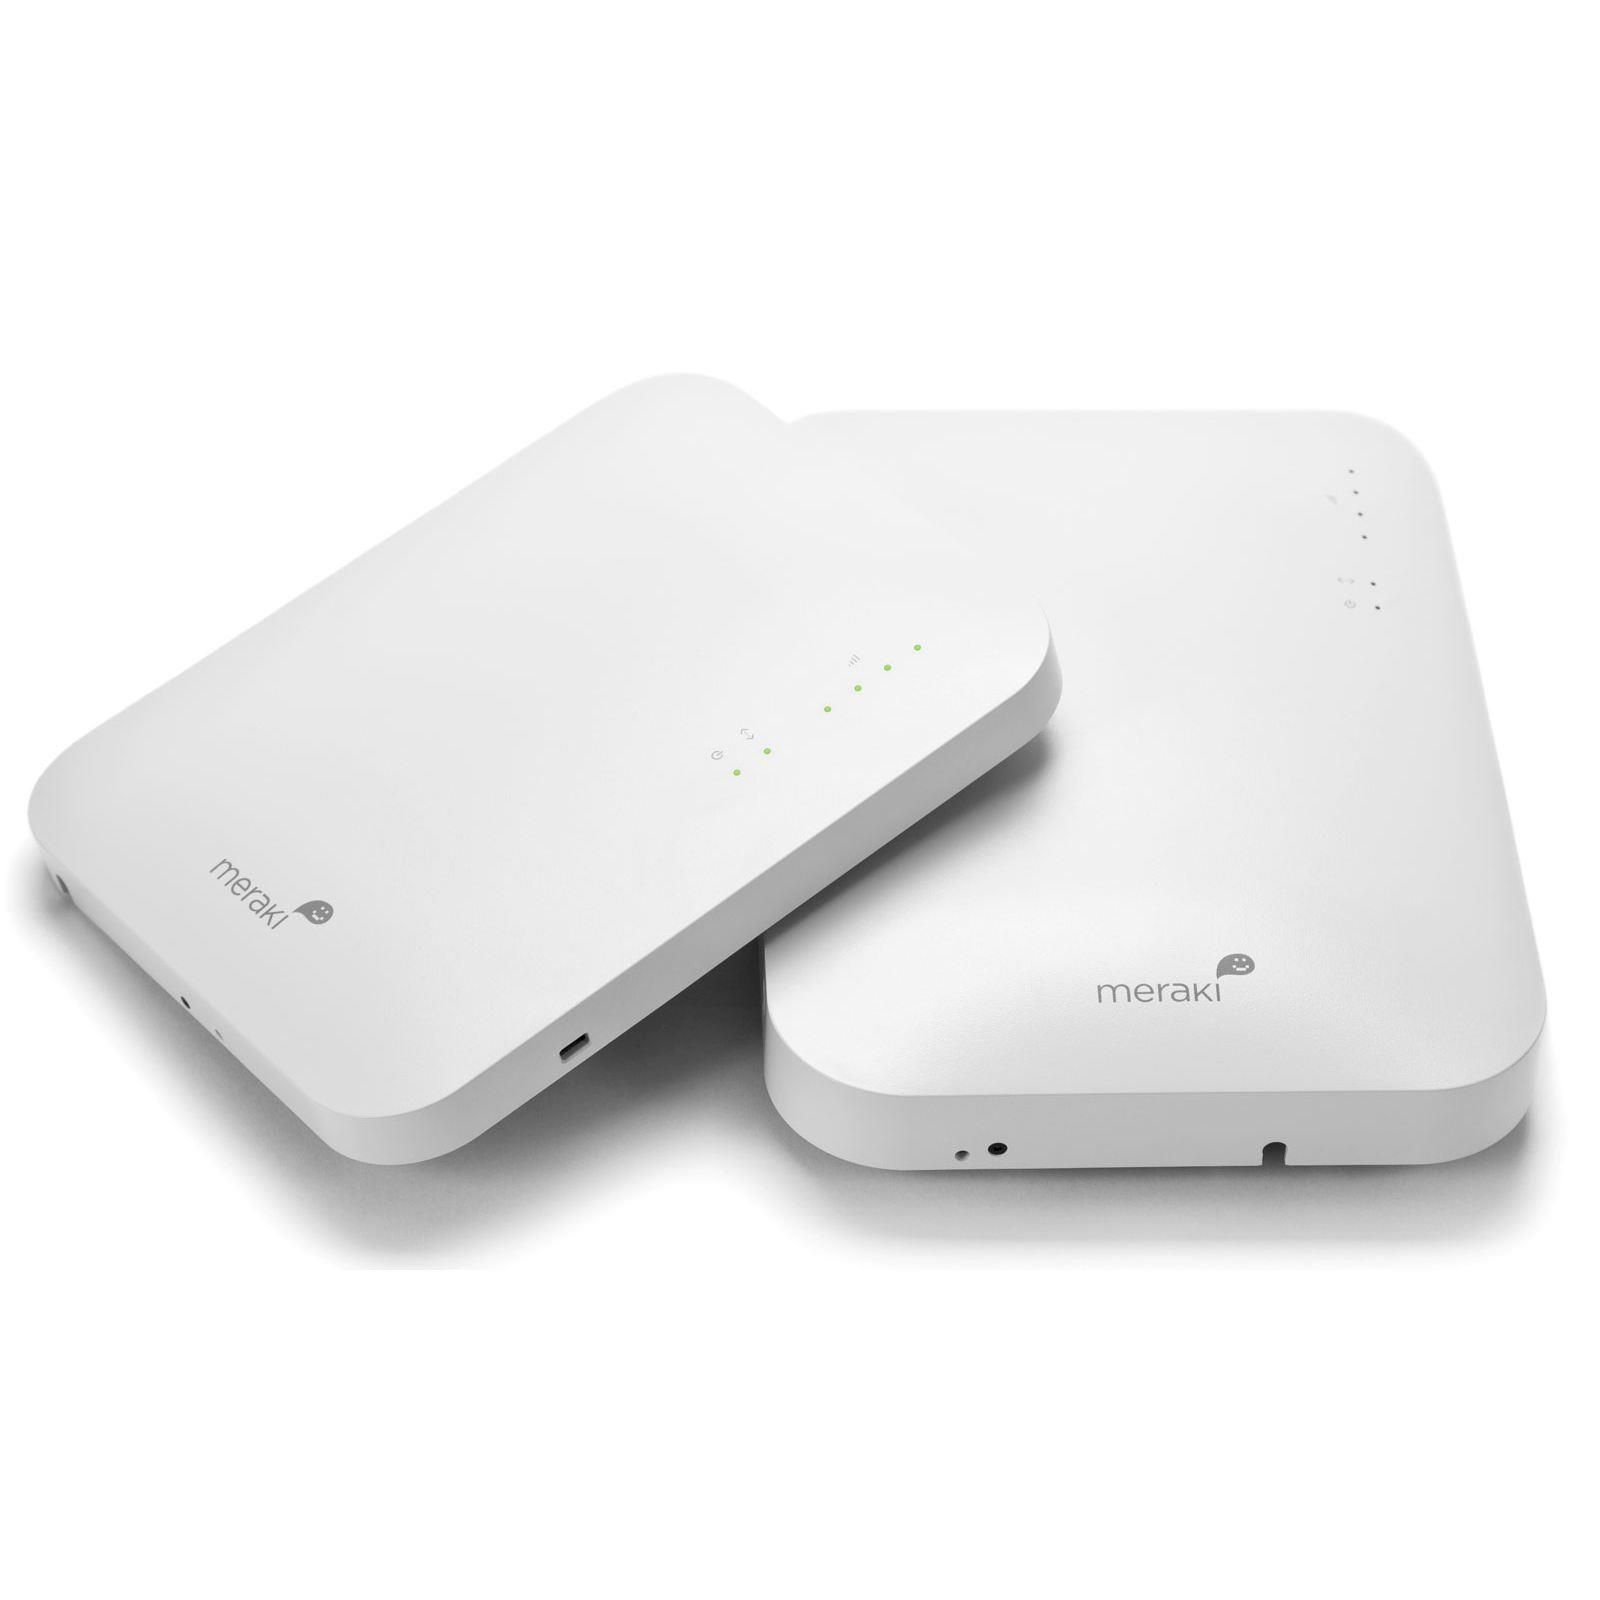 Point Accès Cisco Meraki MR18 802.11n MiMo 2x2